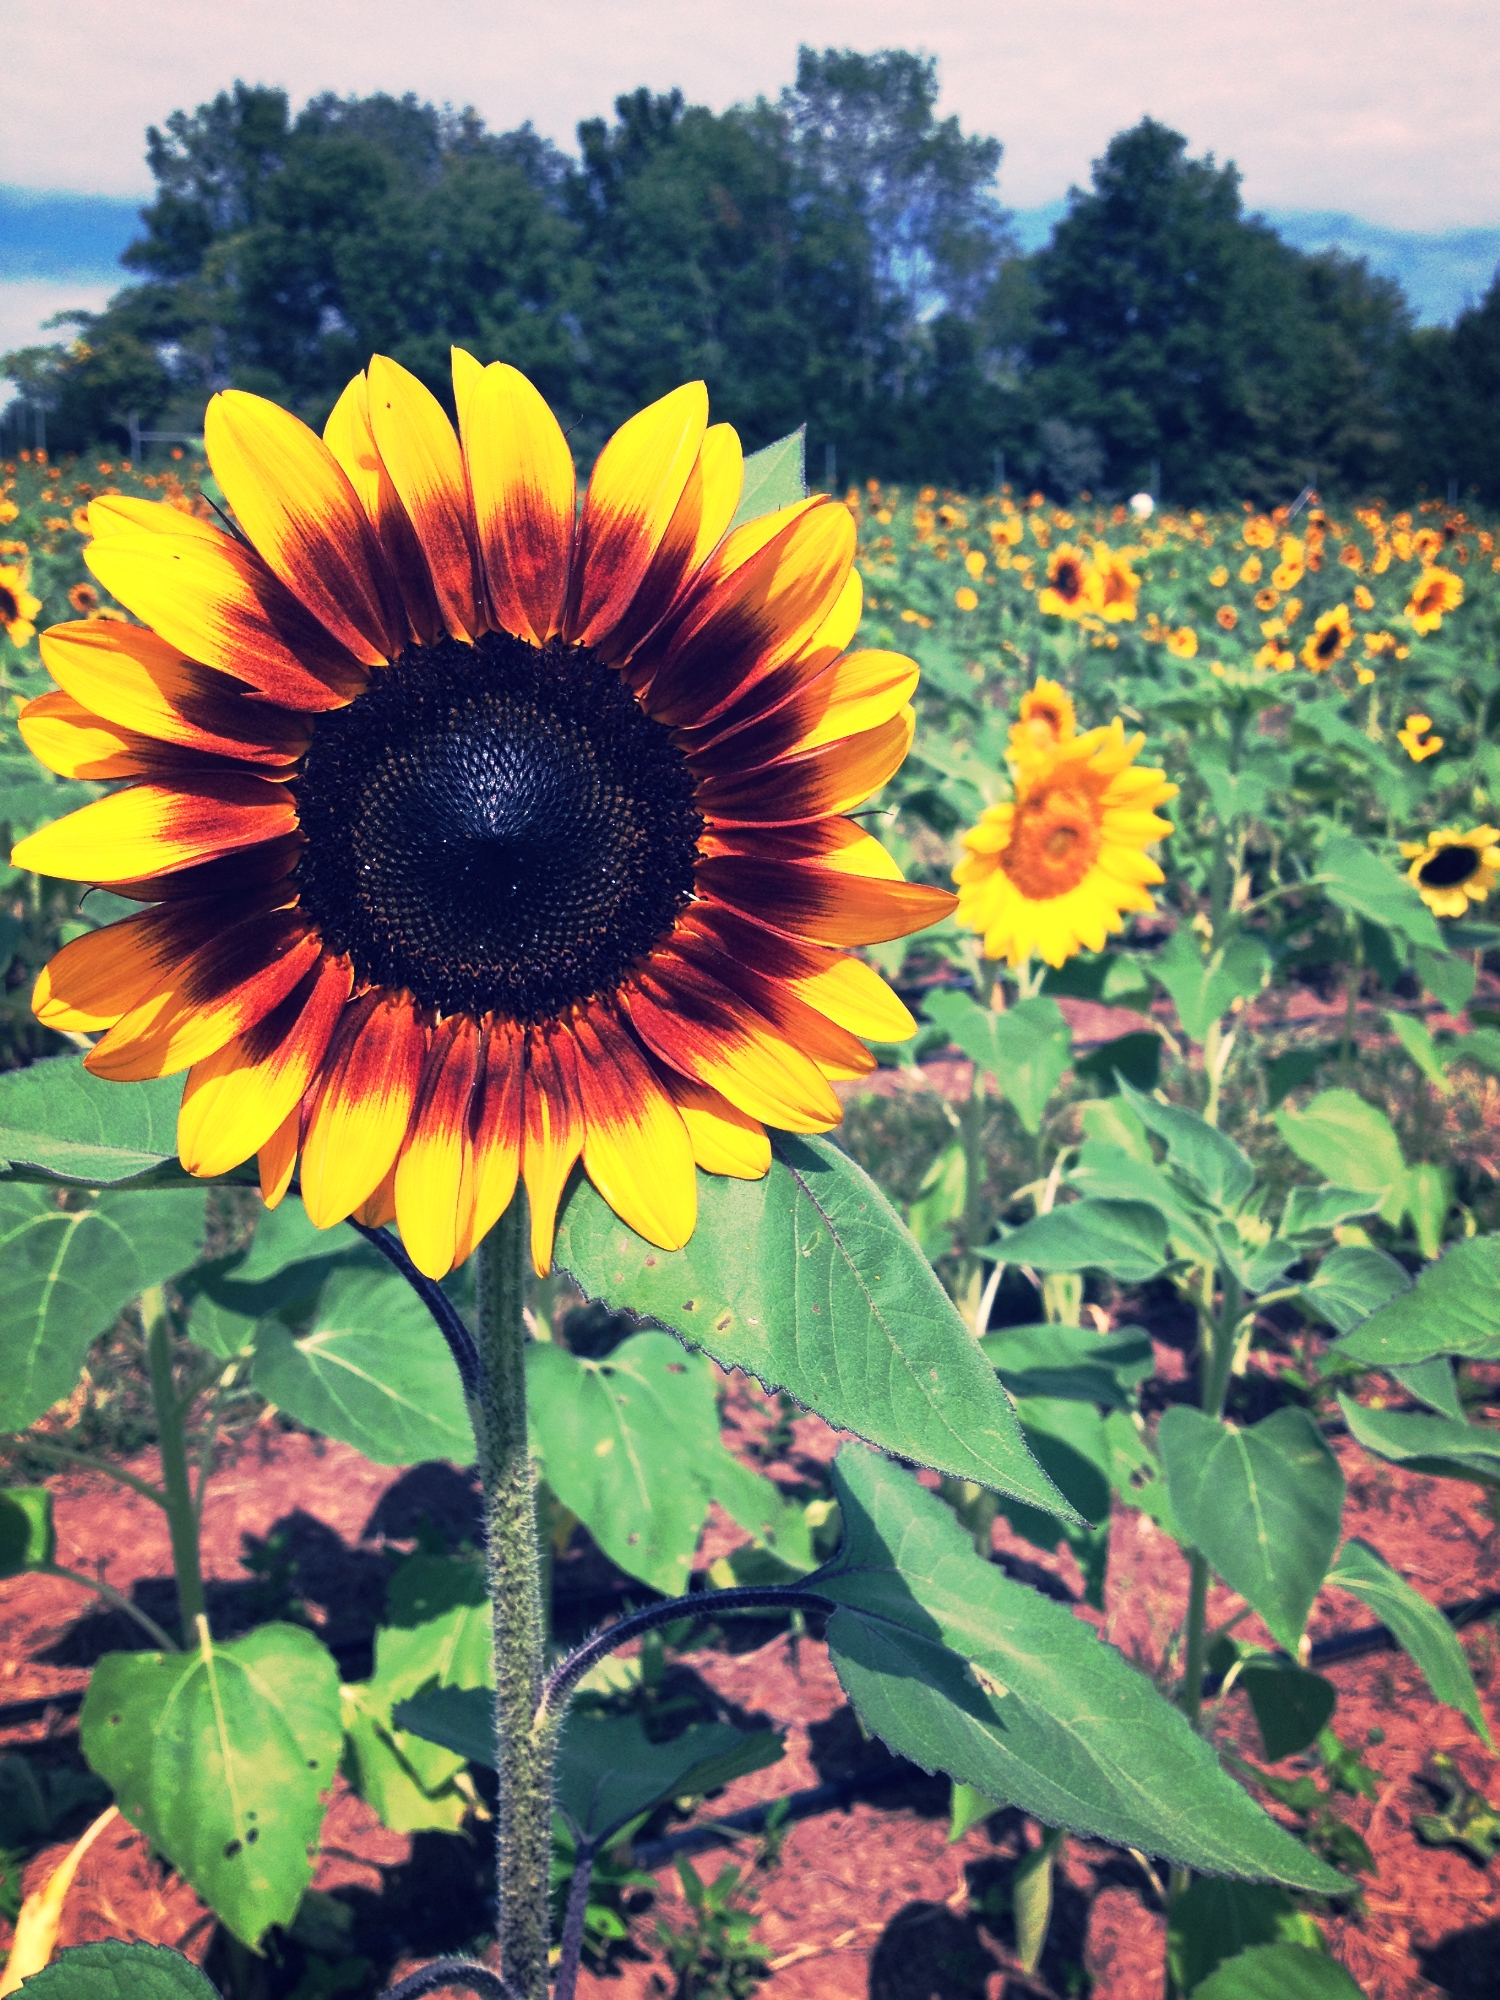 Summer in the Sunflowers.